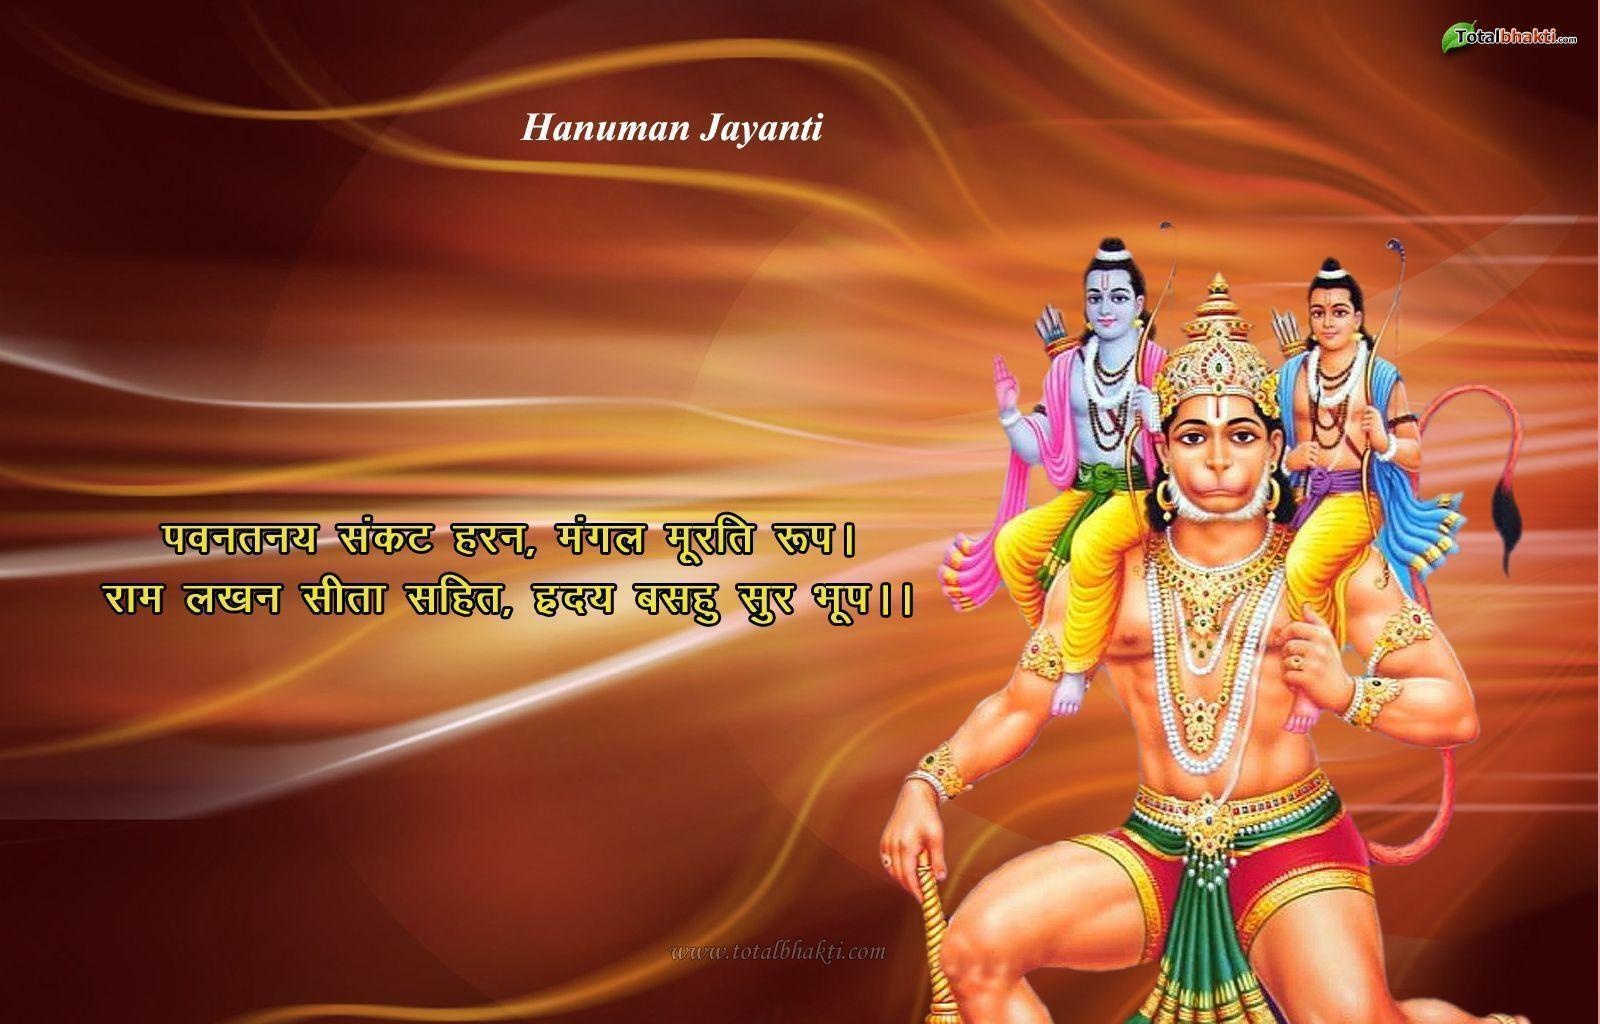 hanuman wallpaper, Hindu wallpaper, Hanuman Jayanti Wallpaper ...